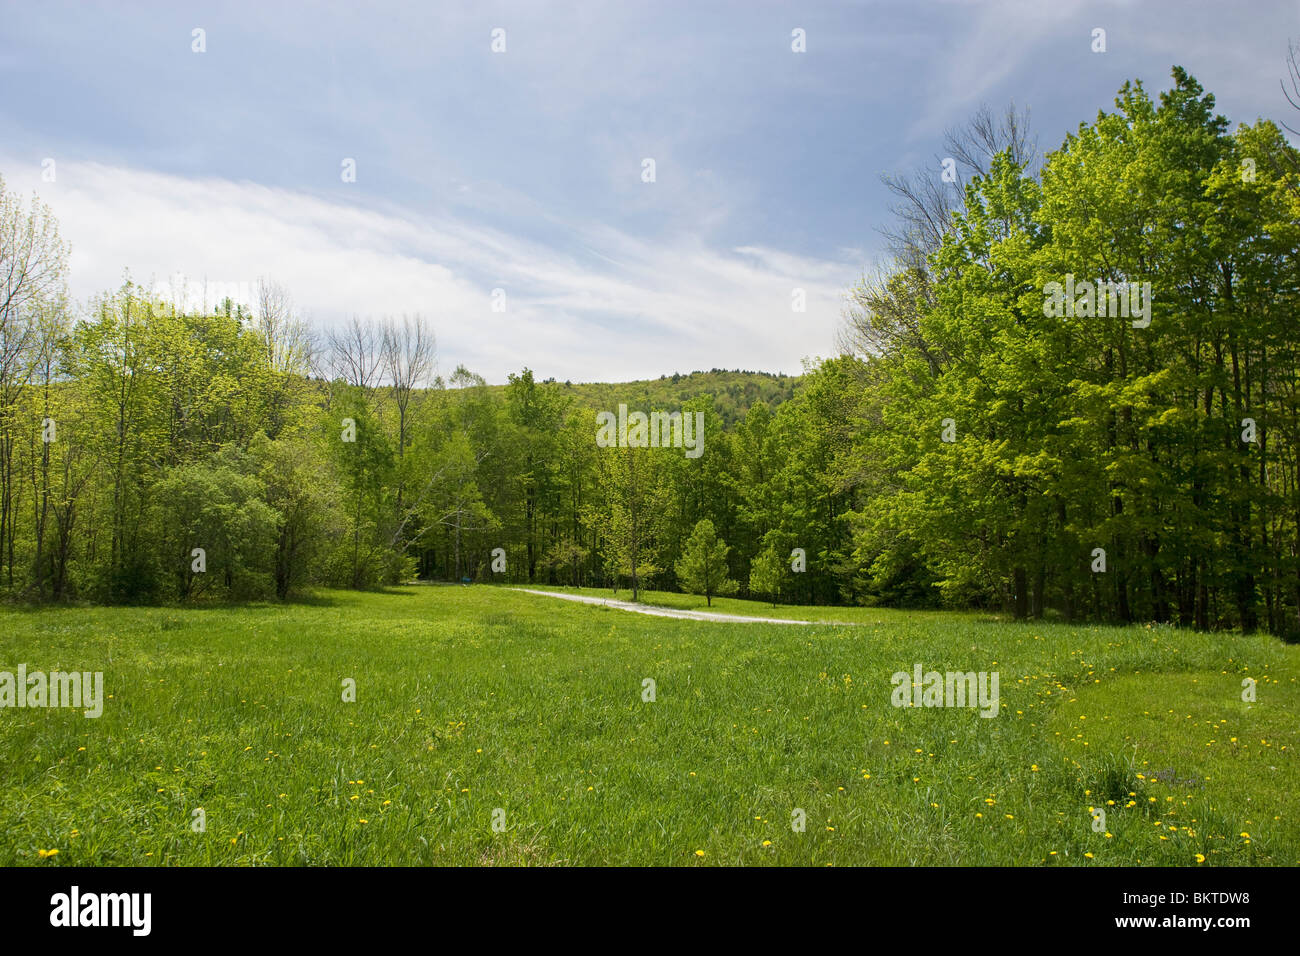 Summertime green meadow in rural Vermont - Stock Image